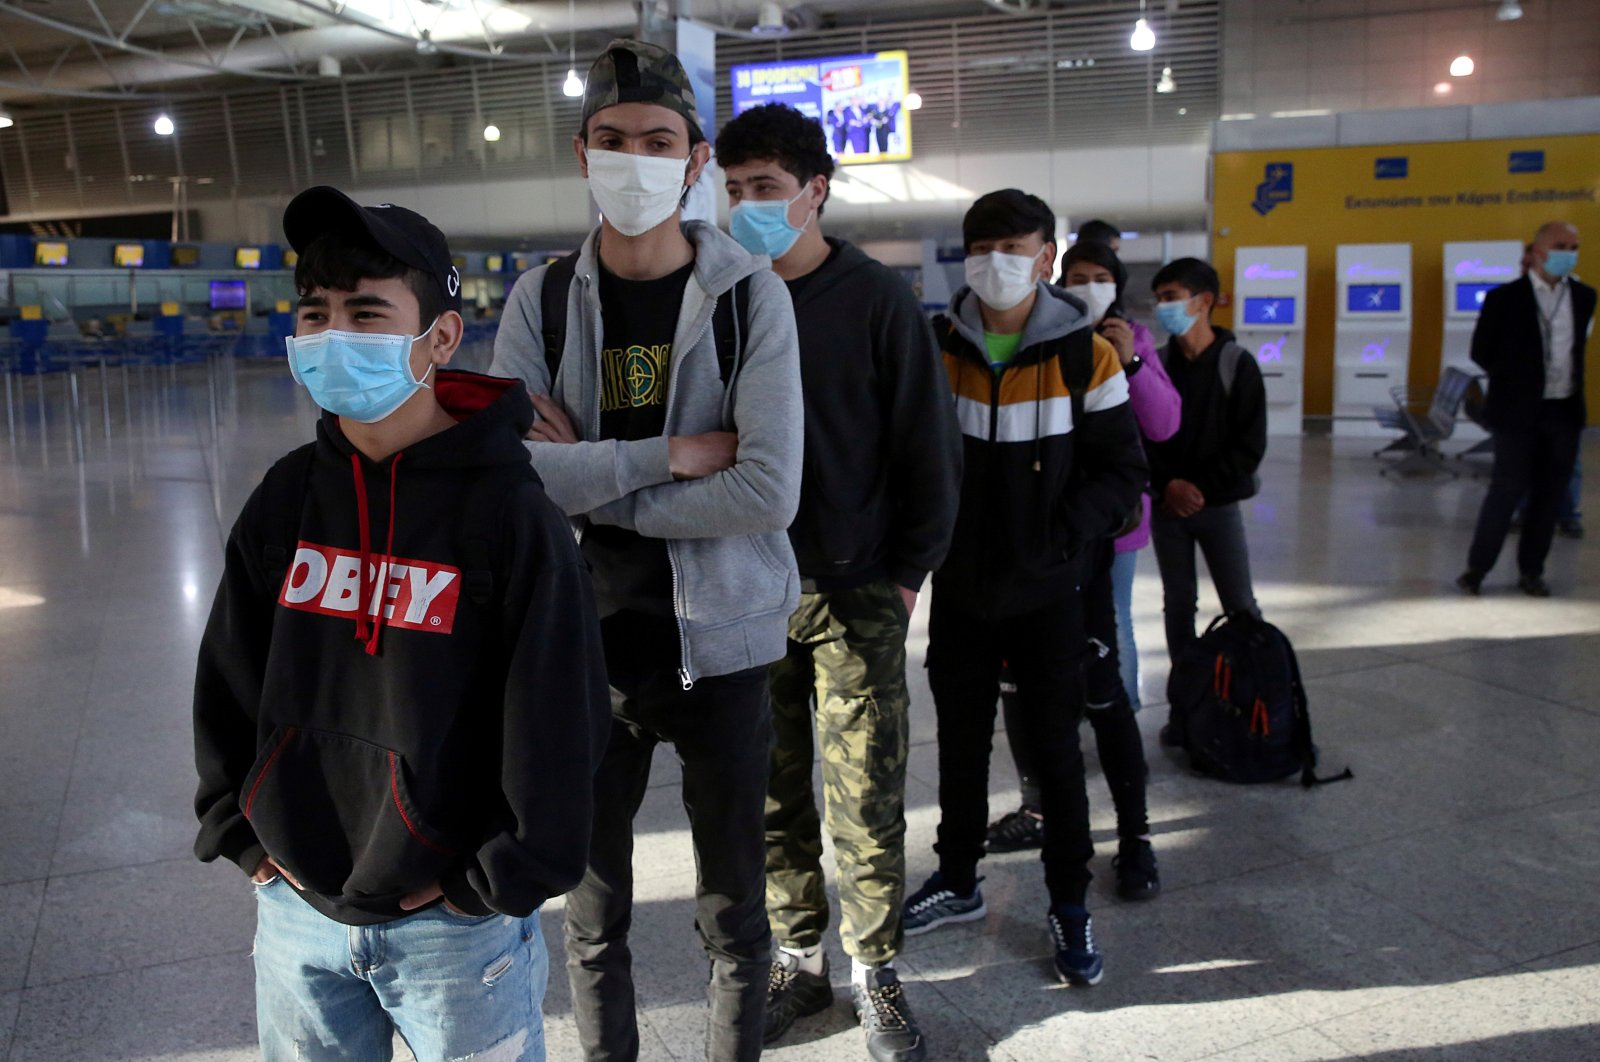 A group of unaccompanied children being transferred to Luxembourg from overcrowded migrant camps waits to board their flight at Athens International Airport, Greece, April 15, 2020. (Reuters File Photo)